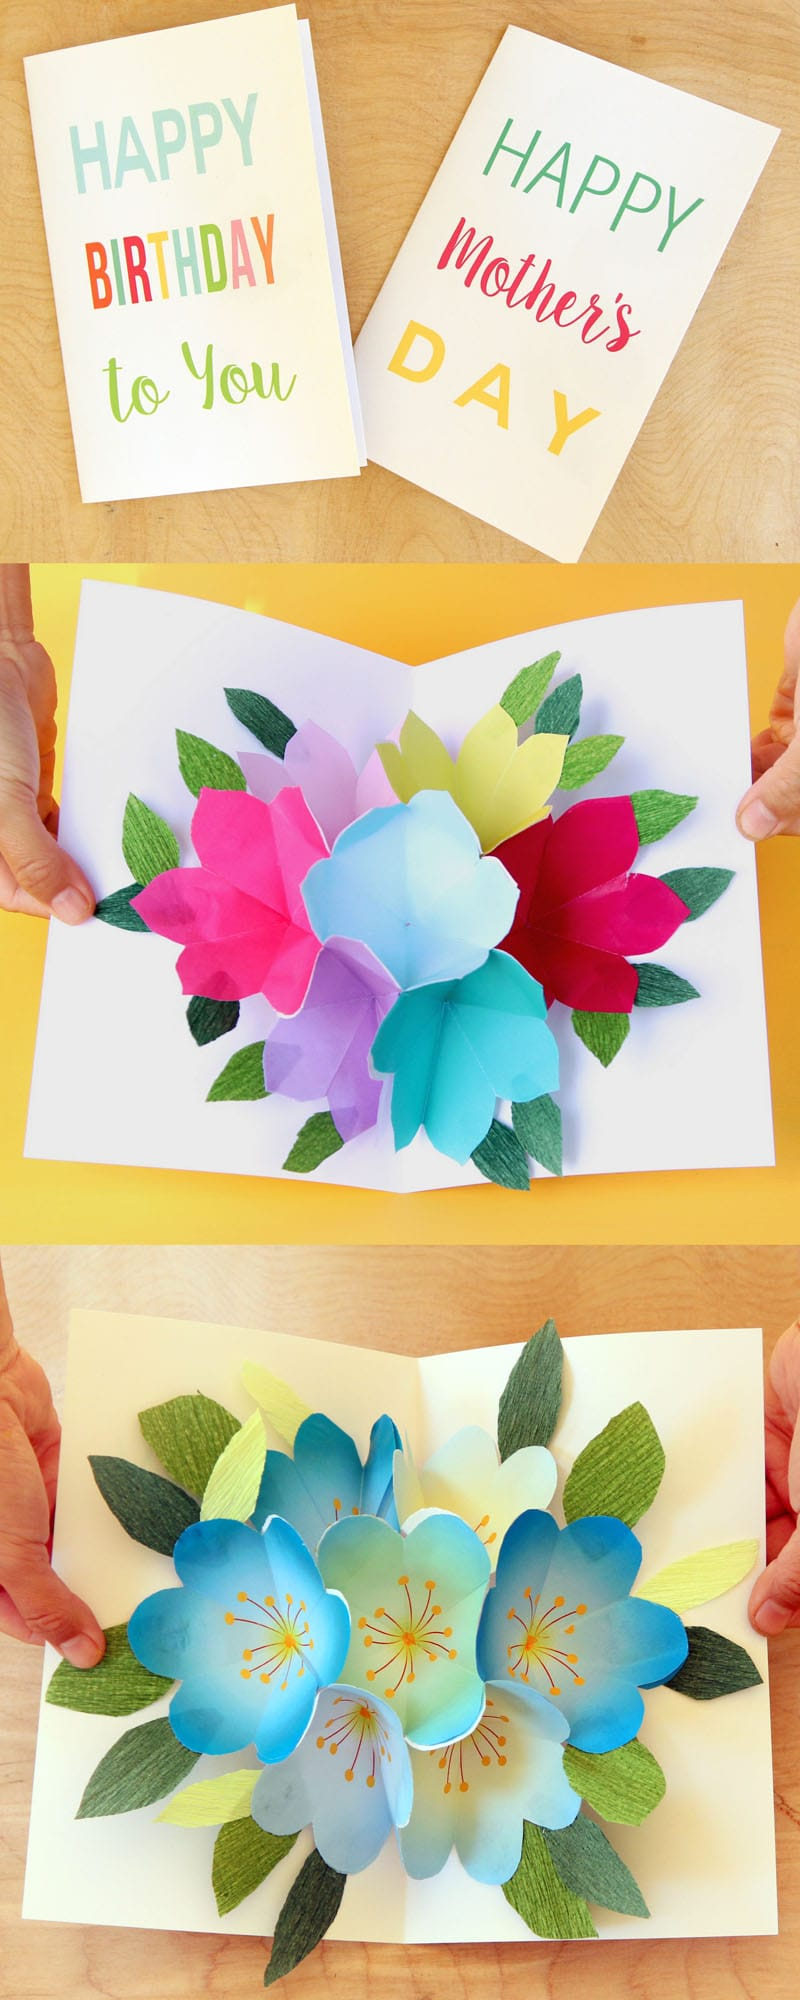 Free printable happy birthday card with pop up bouquet a piece you can make this easy and free printable birthday card in less than an hour oh and the best part a big bouquet pops right out when your loved one opens kristyandbryce Choice Image